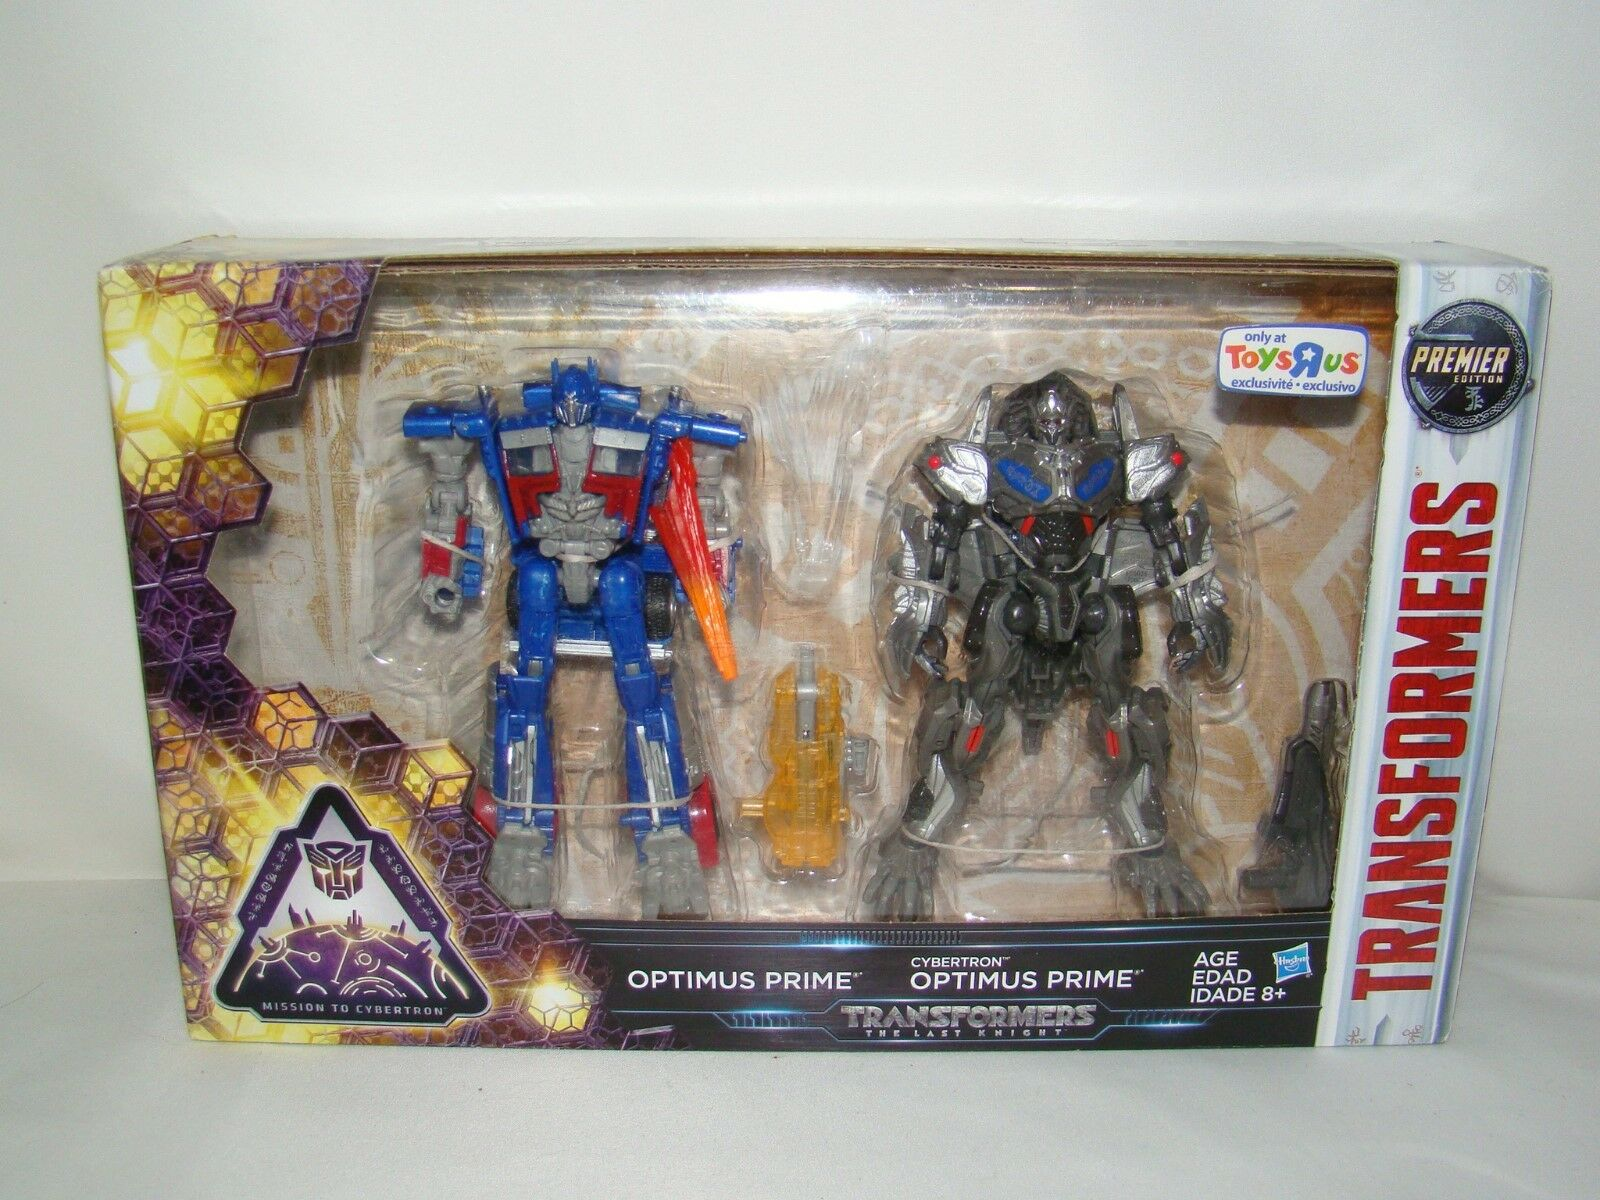 B32 Transformers Last Knight Premier Edition Cybertron Optimus Prime 2-pack 2-pack 2-pack New 36a